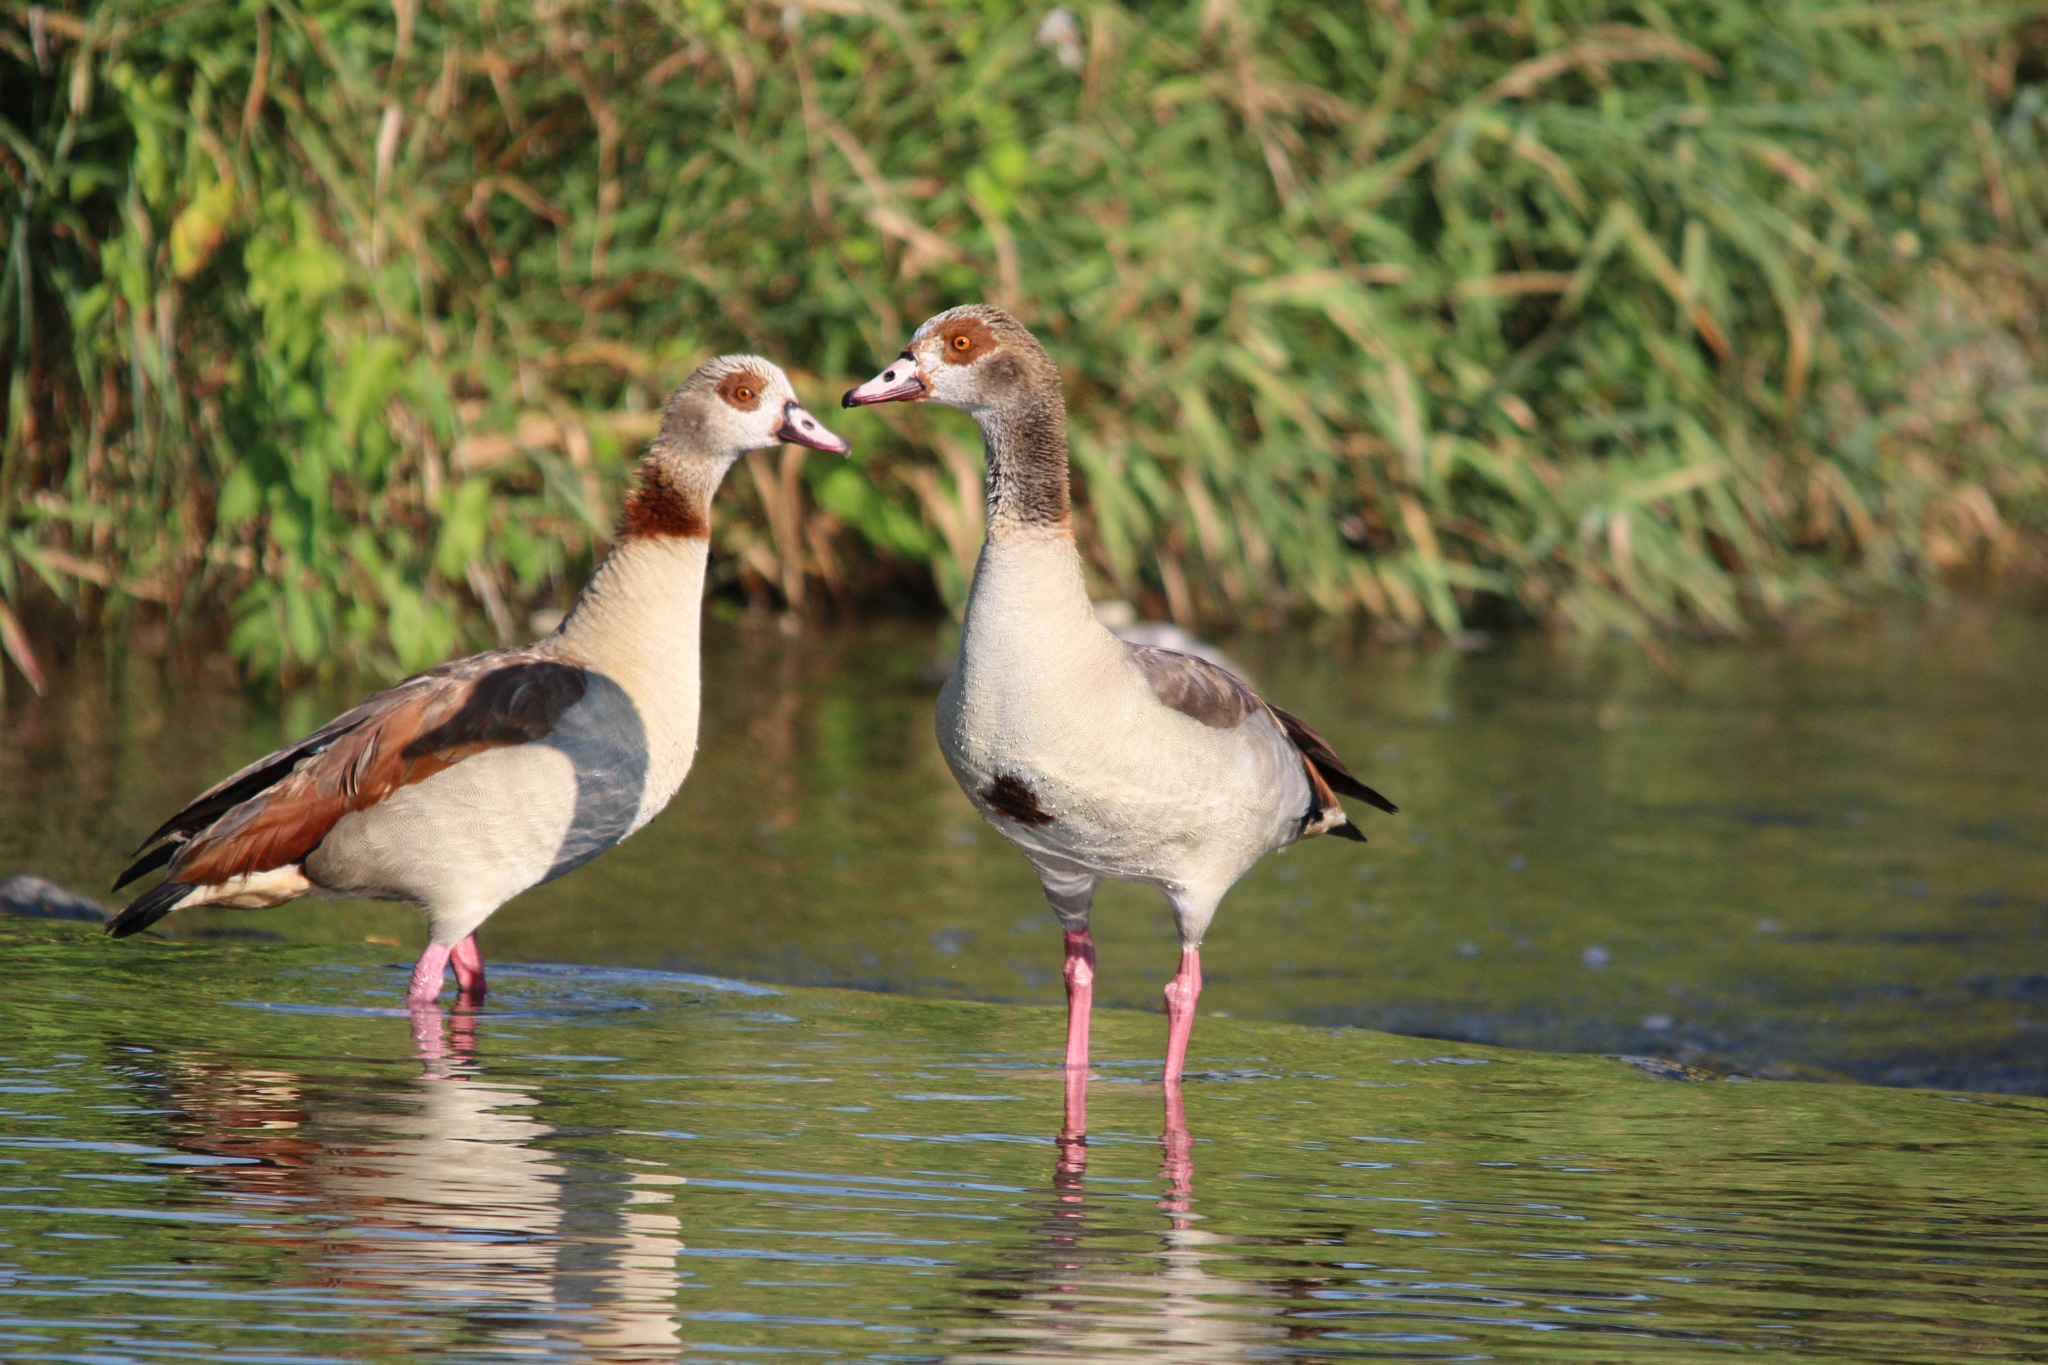 Nilgans by Karl Dulleck